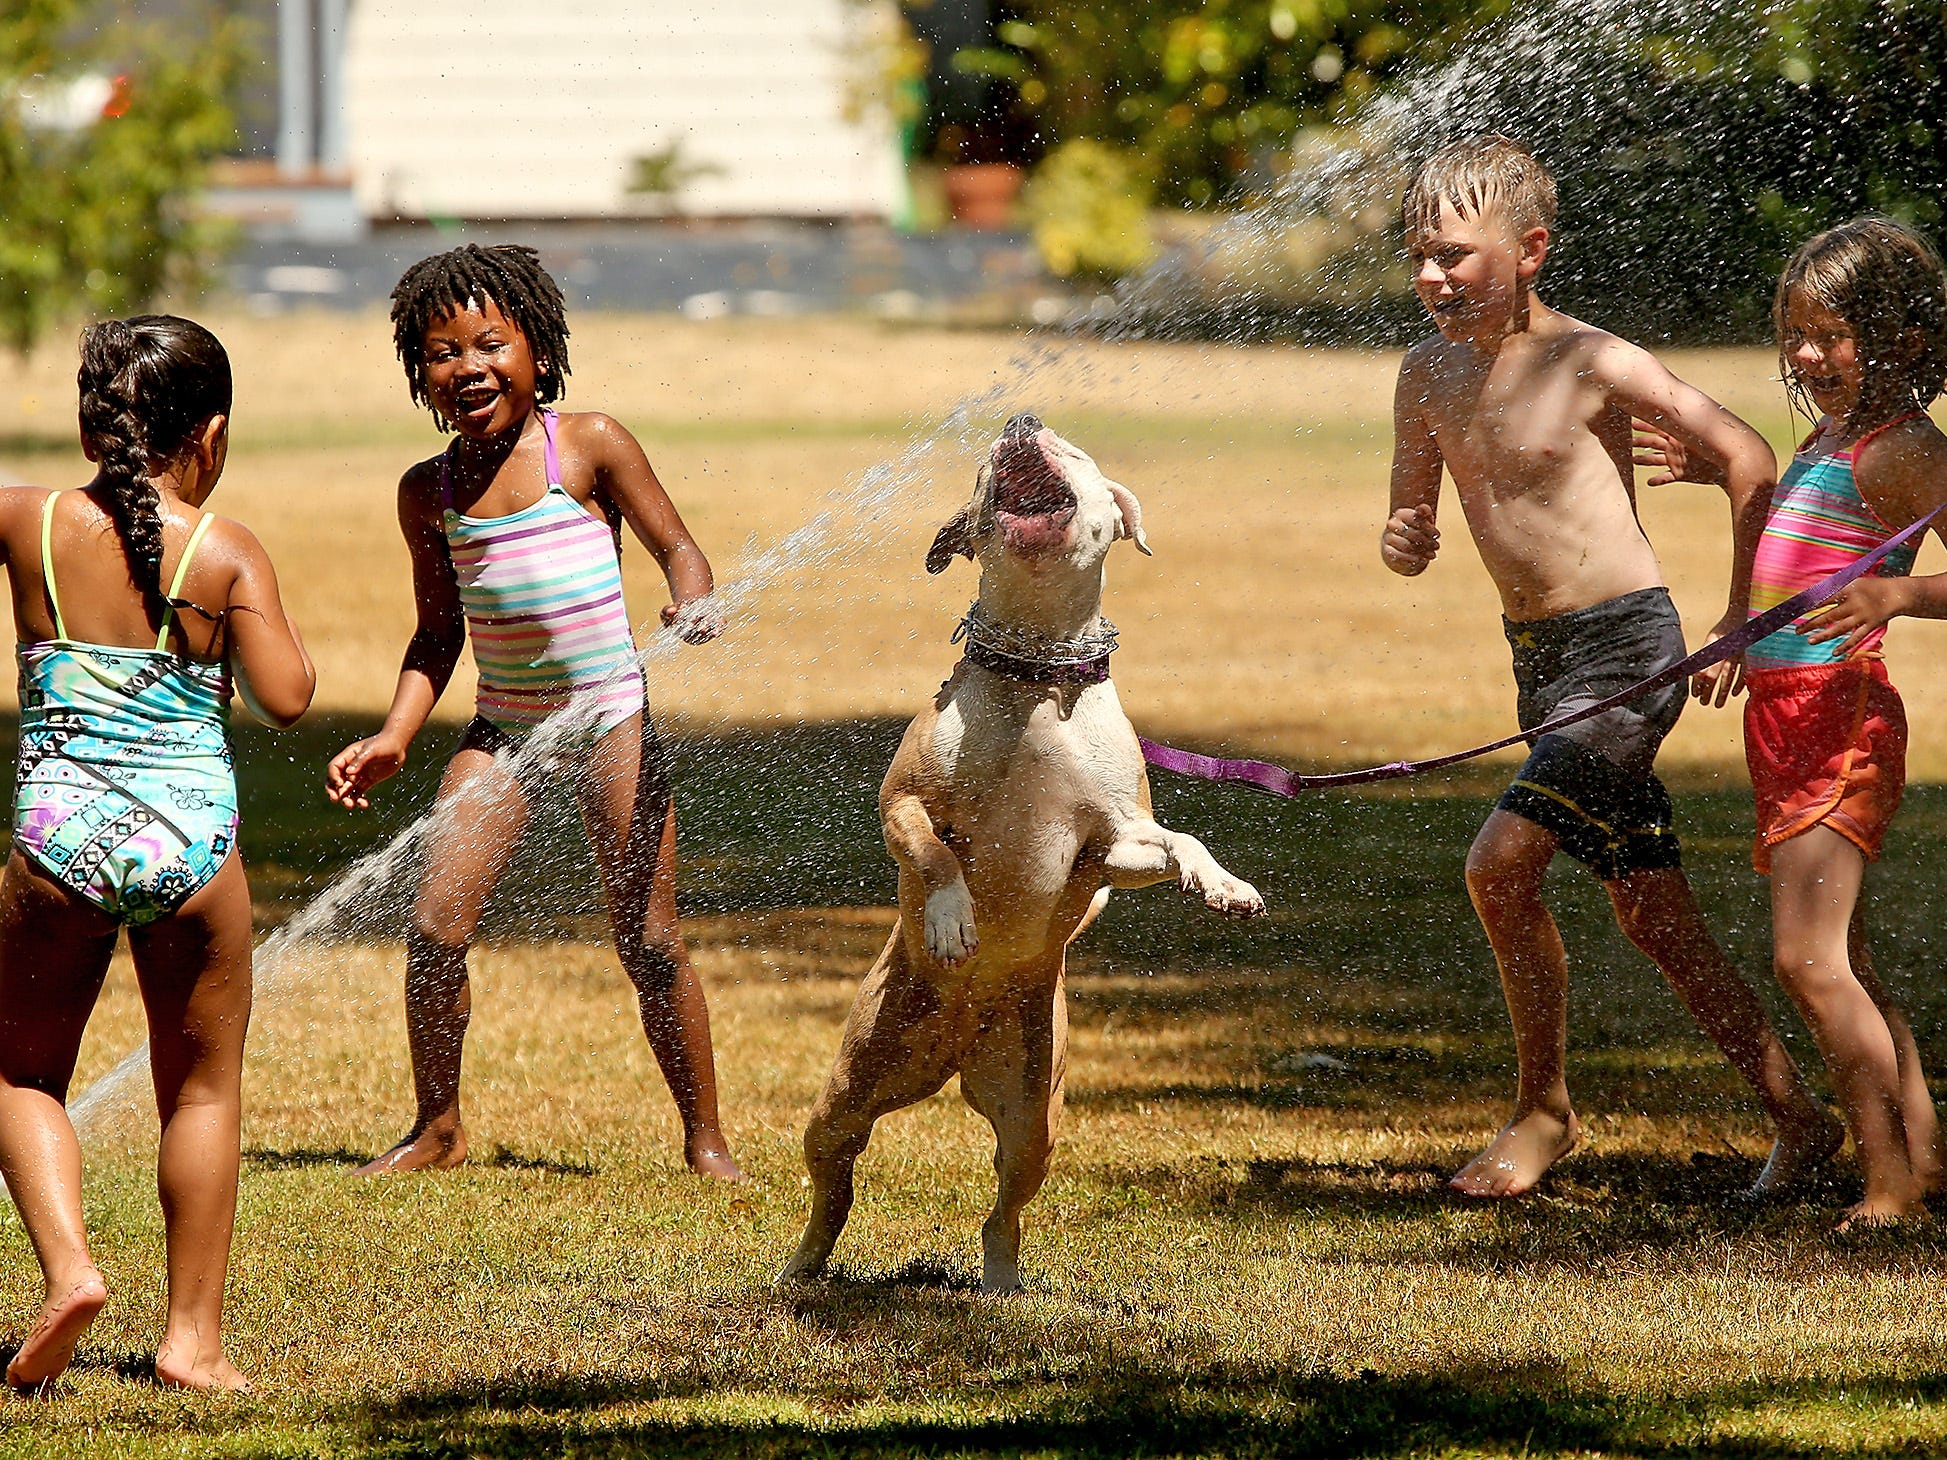 Enjoying the cool sprinklers on a hot day (left to right) Zurina Pierce, 4, Rosie Clement, 6, Liam Clement, 10, and Eva Clement, 7, laugh as Sarah Tabor's dog Sabrina joins them in running through the sprinklers at Evergreen Rotary Park in Bremerton Washington on Thursday, July 12, 2018. The Bremerton Parks Department turned on the sprinklers for kids to run through on the hot today because the Harborside Fountain Park was closed for a film shoot.